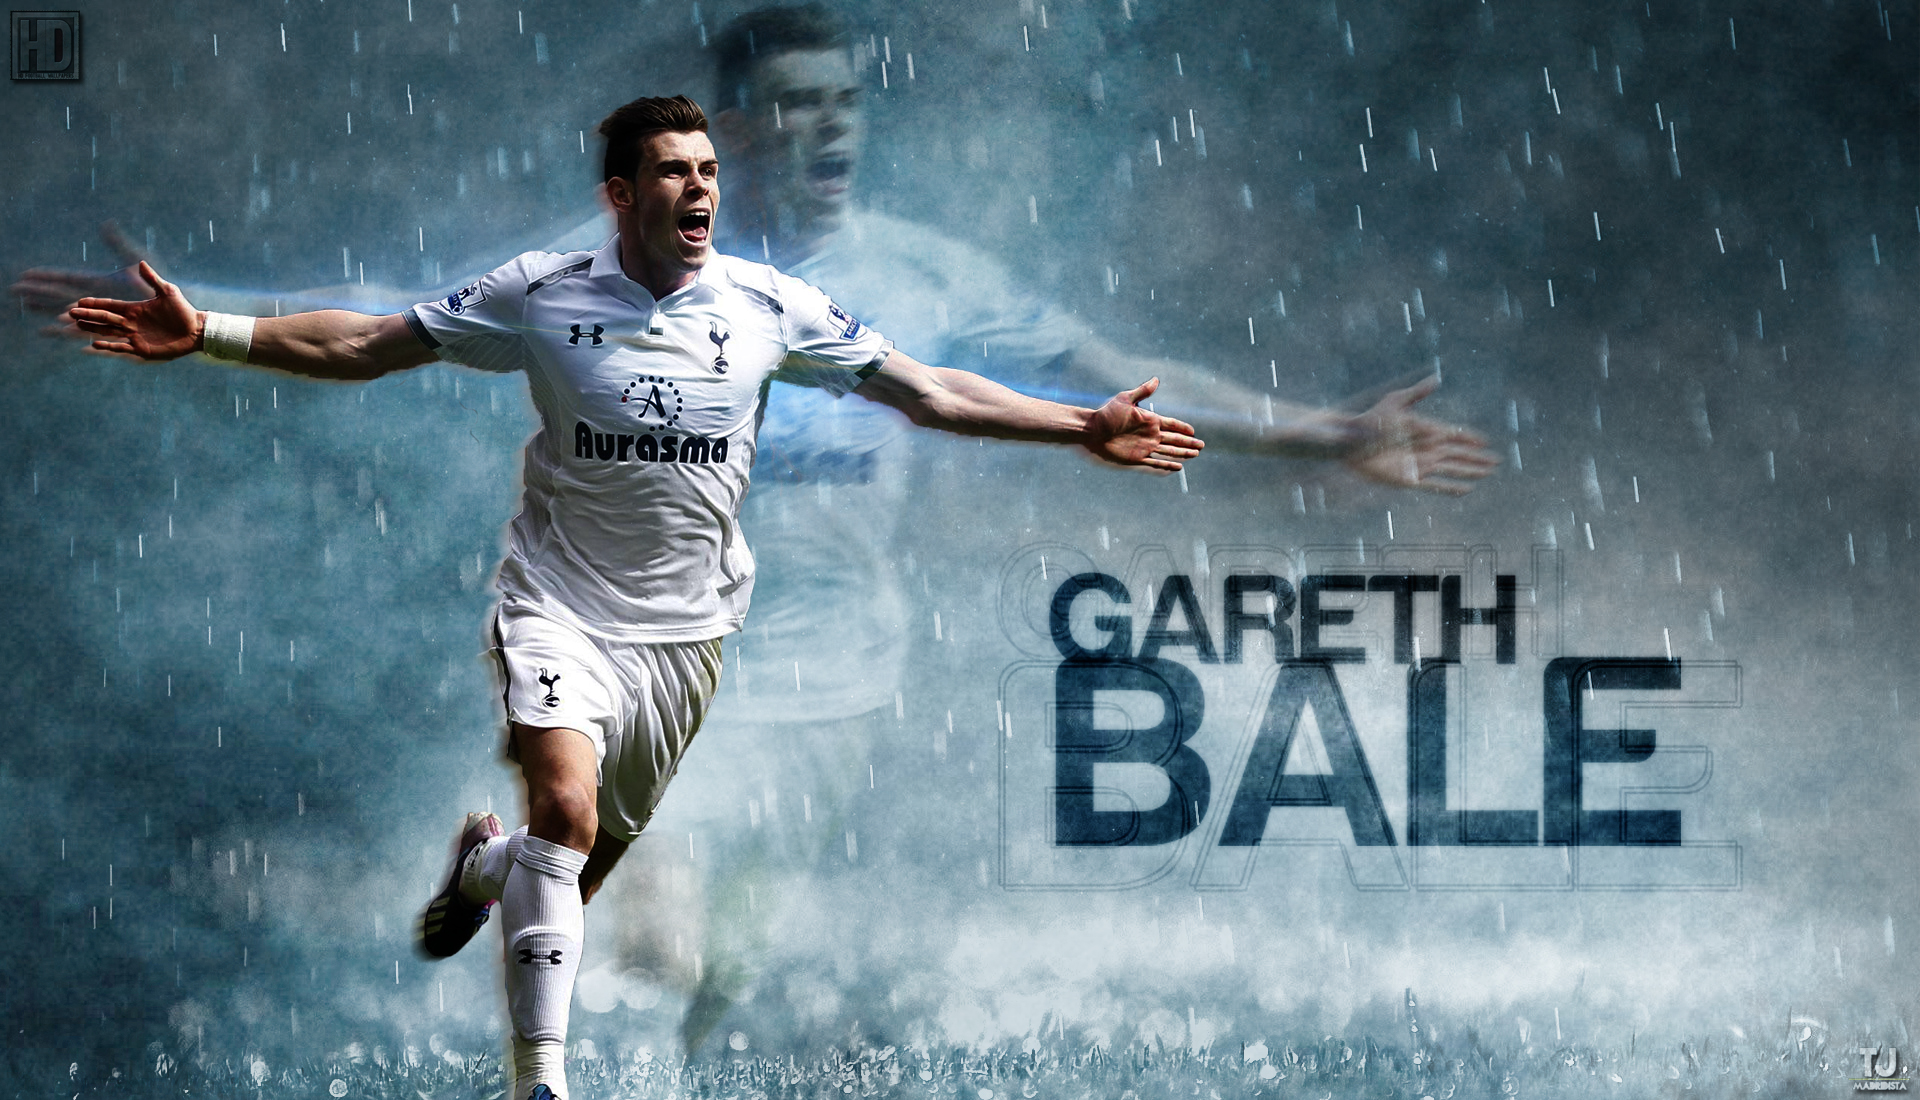 Gareth Bale Celebration Wallpaper 3